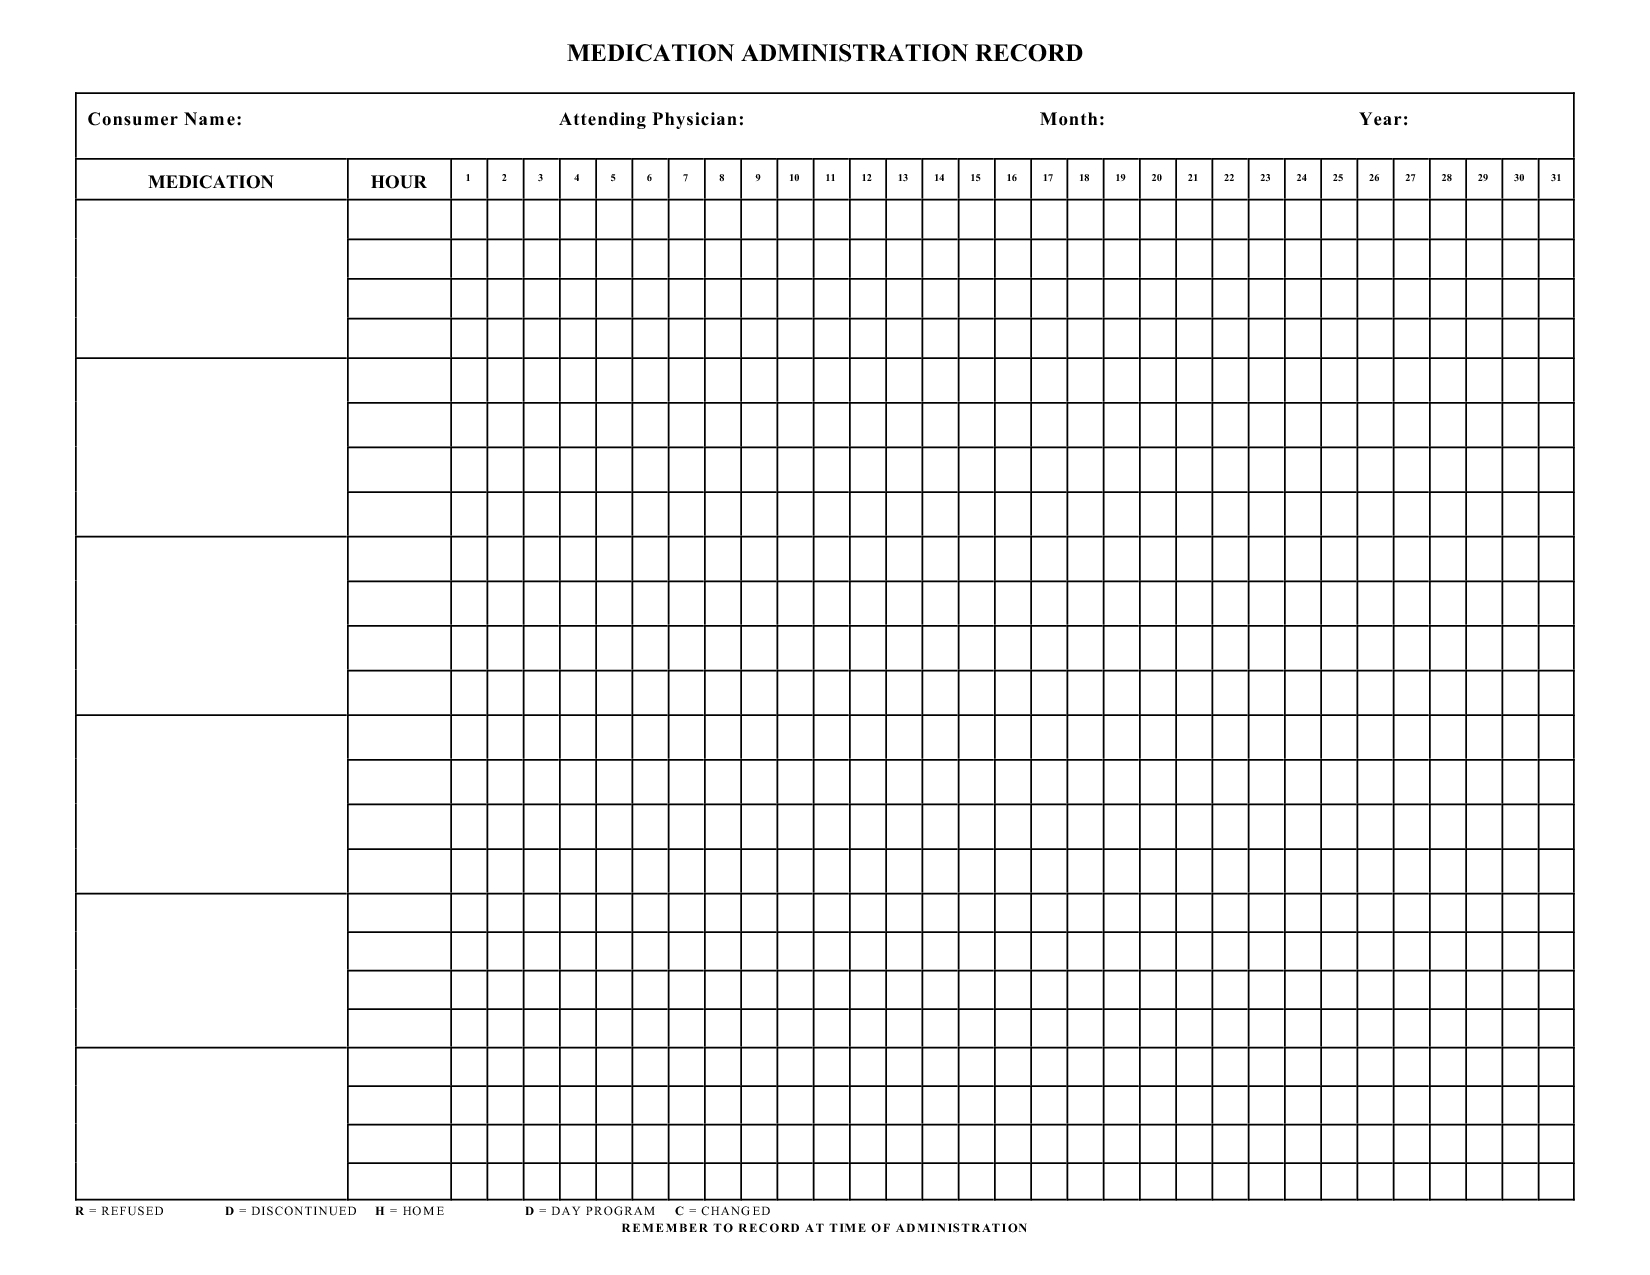 Blank+Medication+Administration+Record+Template | Work | Pinterest - Free Printable Medication Log